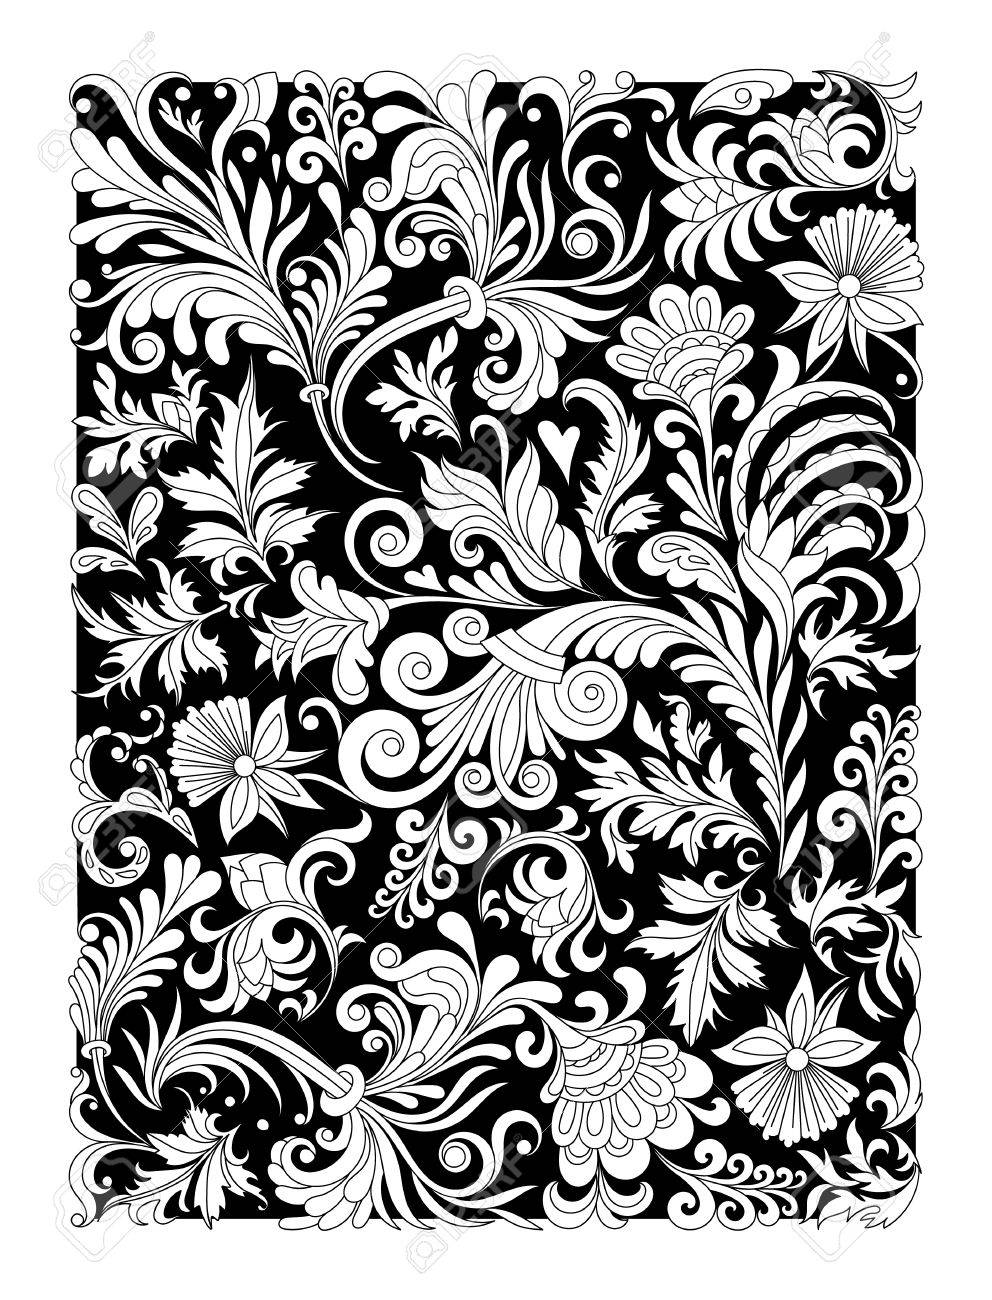 Design Of Spiral Ornamental Floral Notebook Cover Cover For